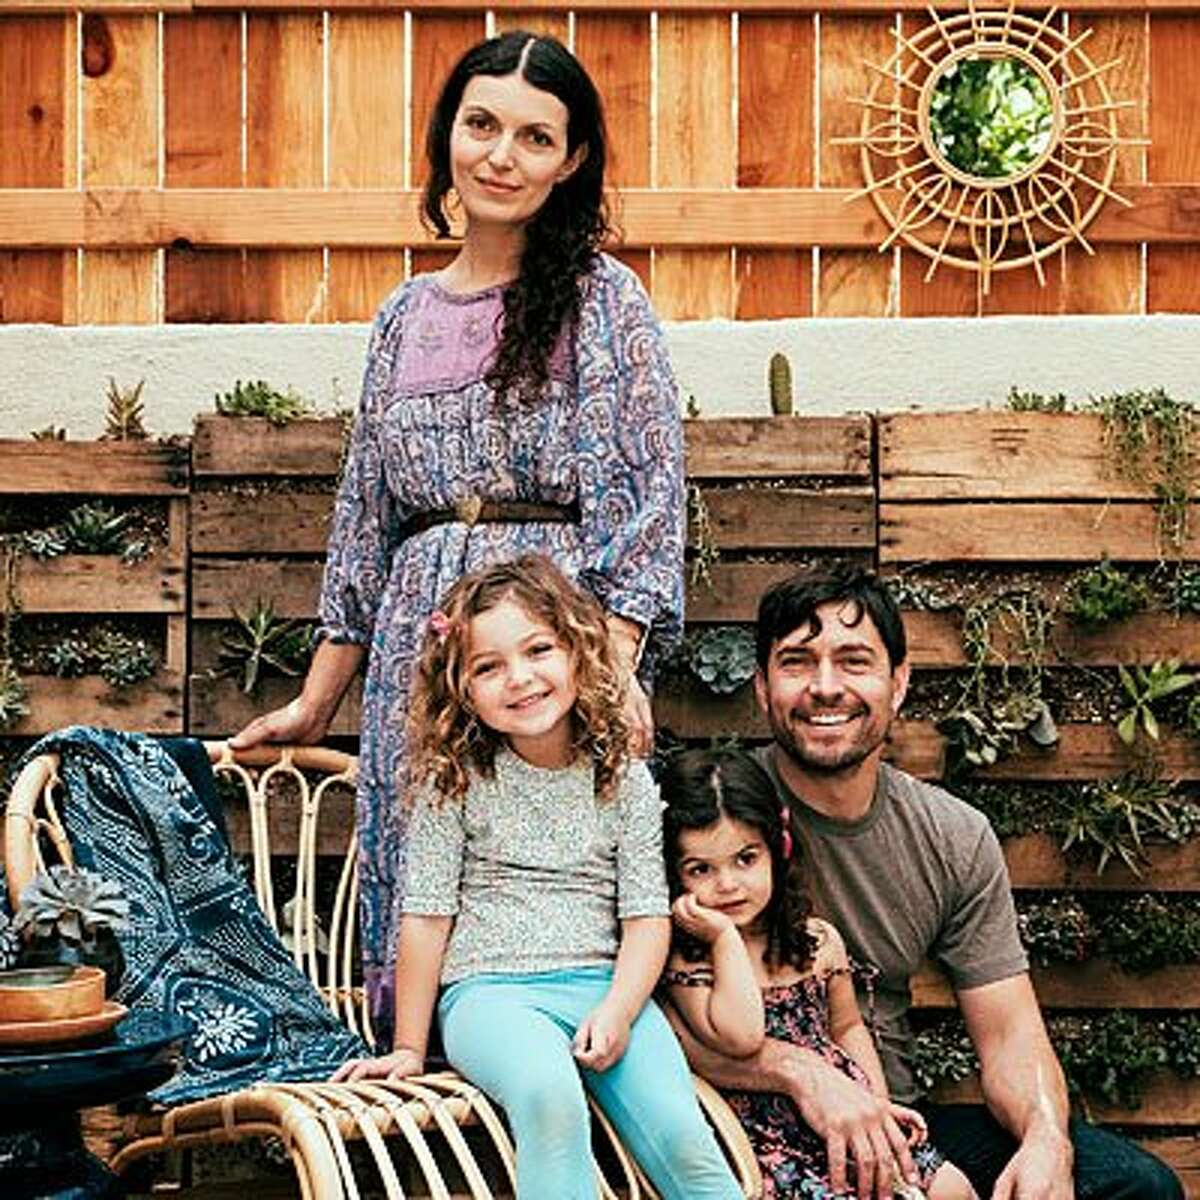 """Living wall Michelle and her husband, Tracy, wanted the yard to feel like an outdoor living room for them and Savannah (on the chair) and Saffron. A neighbor taught them how to make inexpensive living walls out of pallets. """"It's such a lovely addition to the garden,"""" Michelle says."""